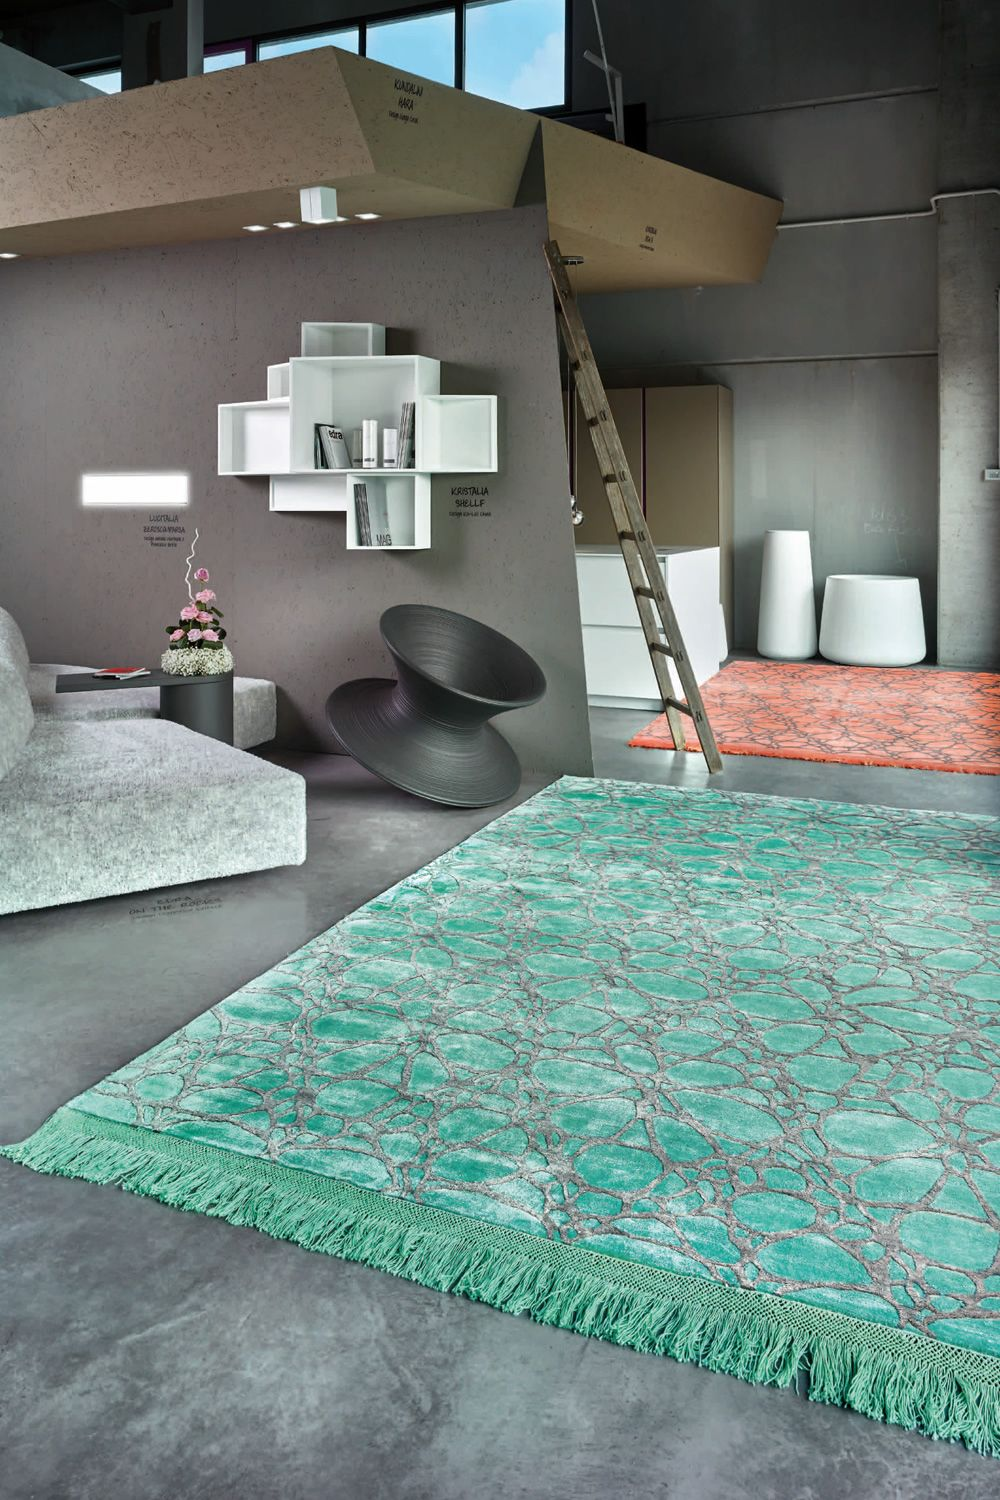 Arlecchino night tappeto design in seta vegetale disponibile in diverse misure e colori - Bagno color pesca ...